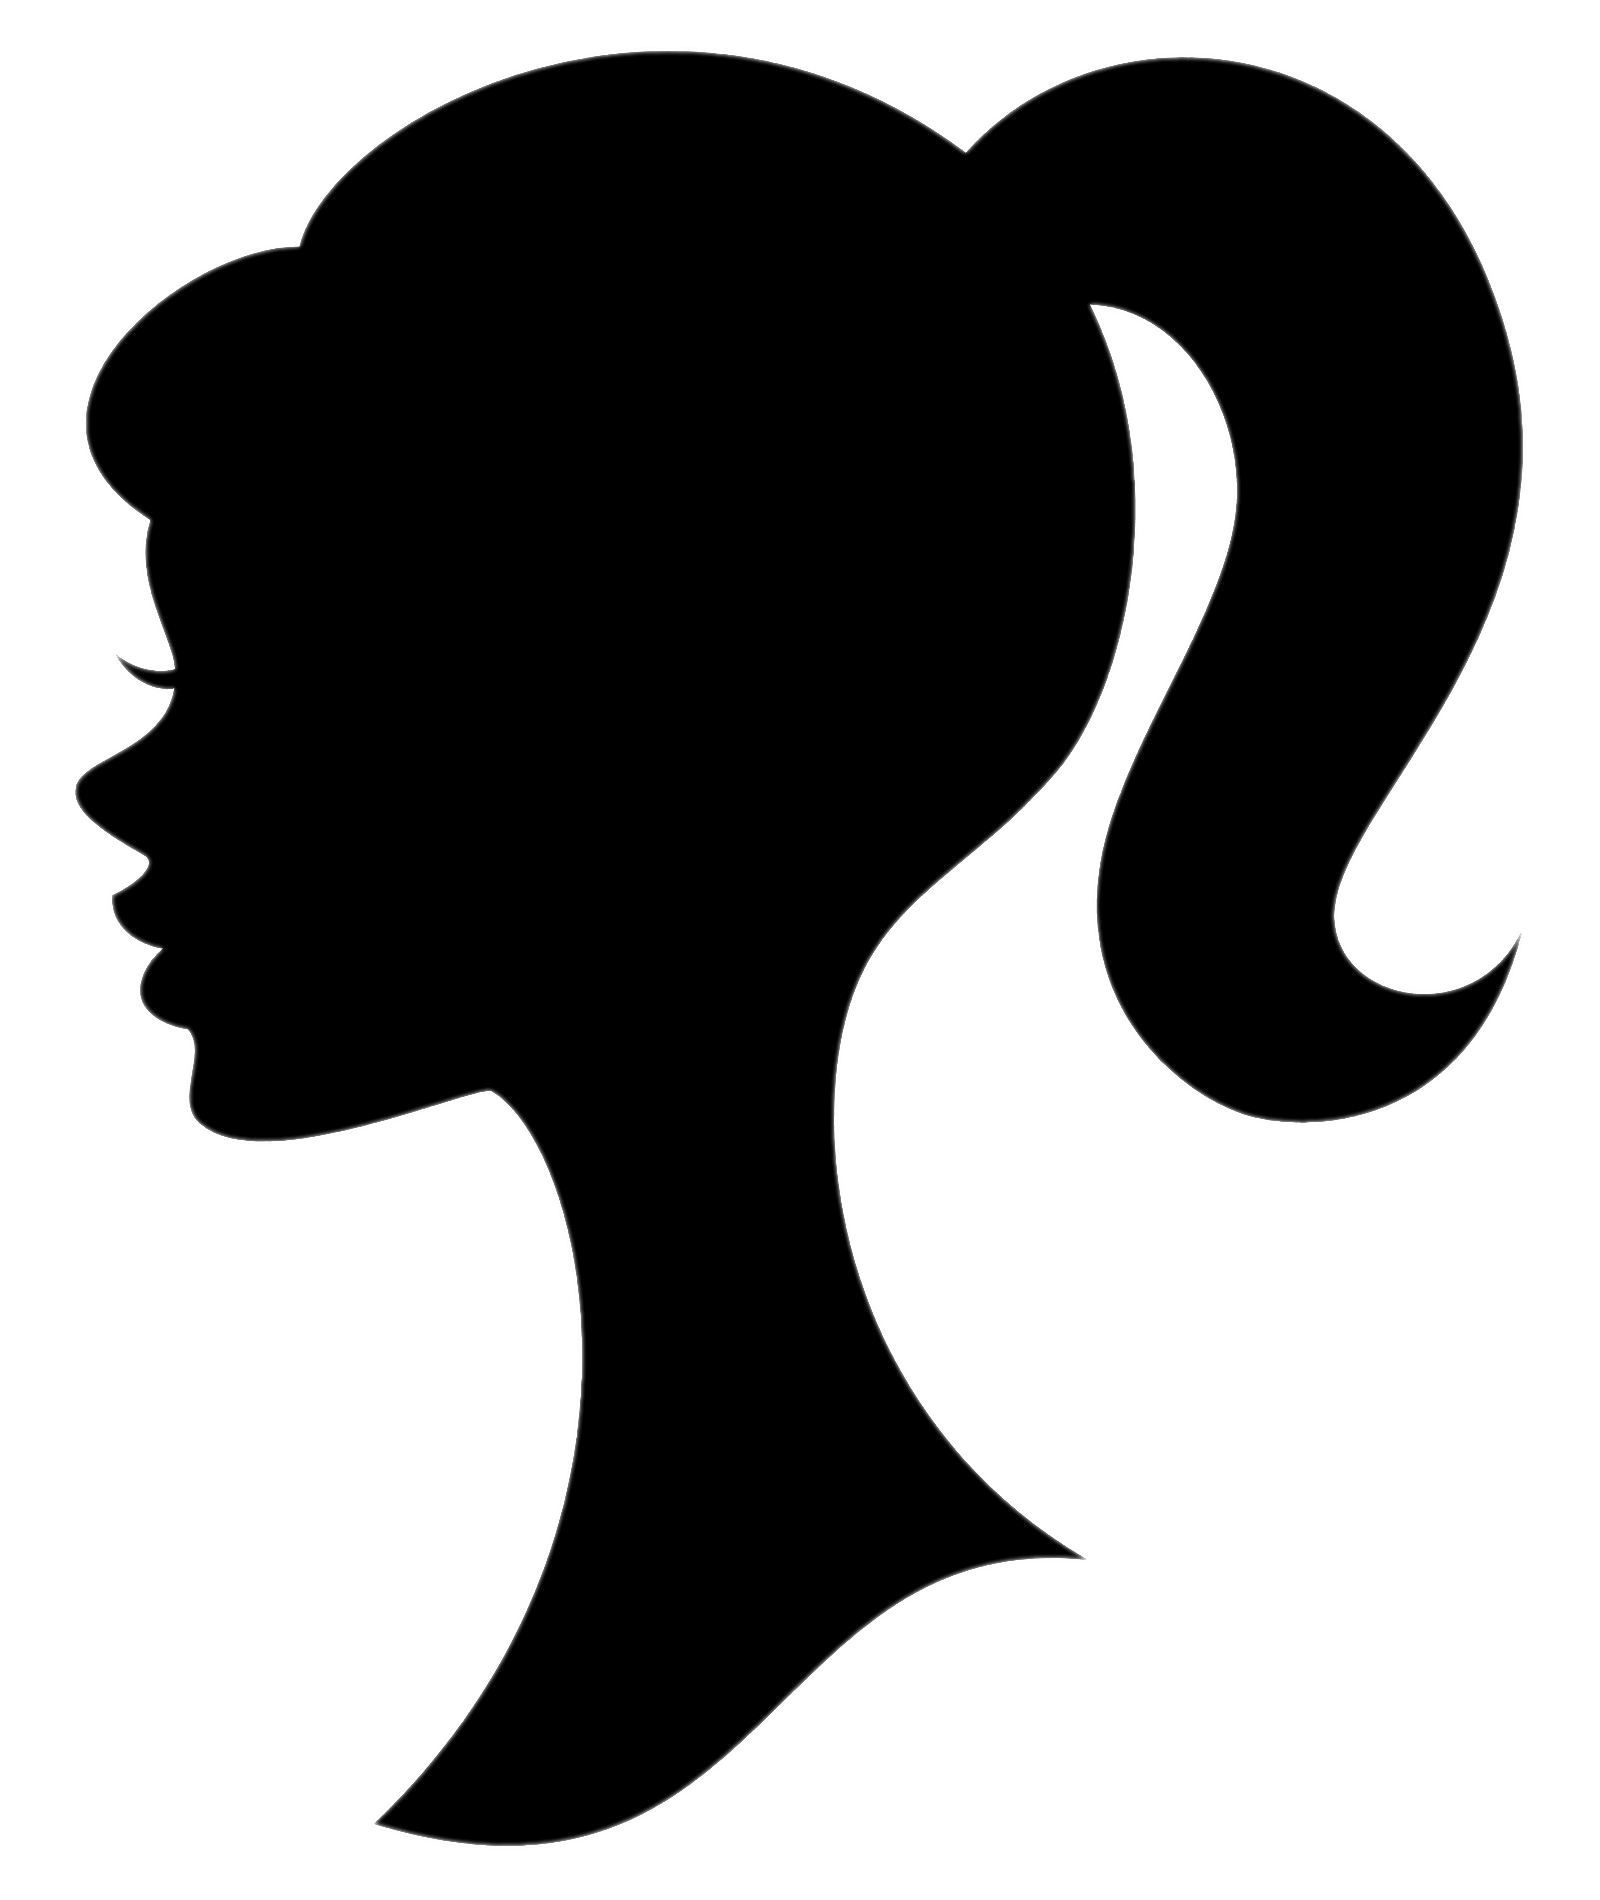 vector black and white download Girl ponytail at getdrawings. Drawing silhouette messy bun